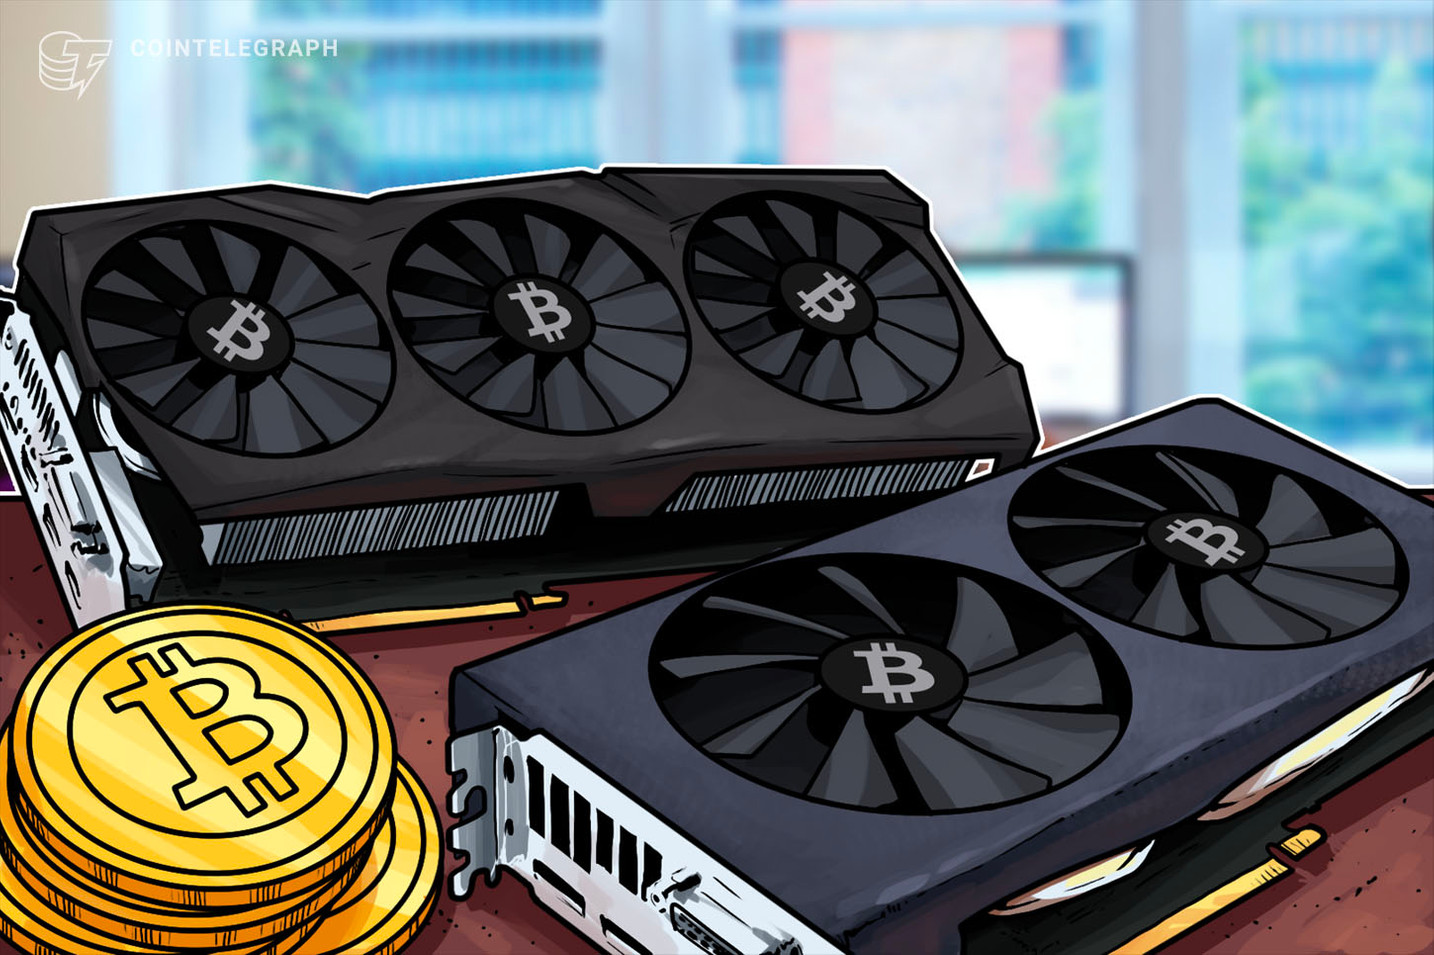 Report: Nvidia to See Q3 Strong Earnings, Crypto-Related GPU Sales Remain in Downtrend